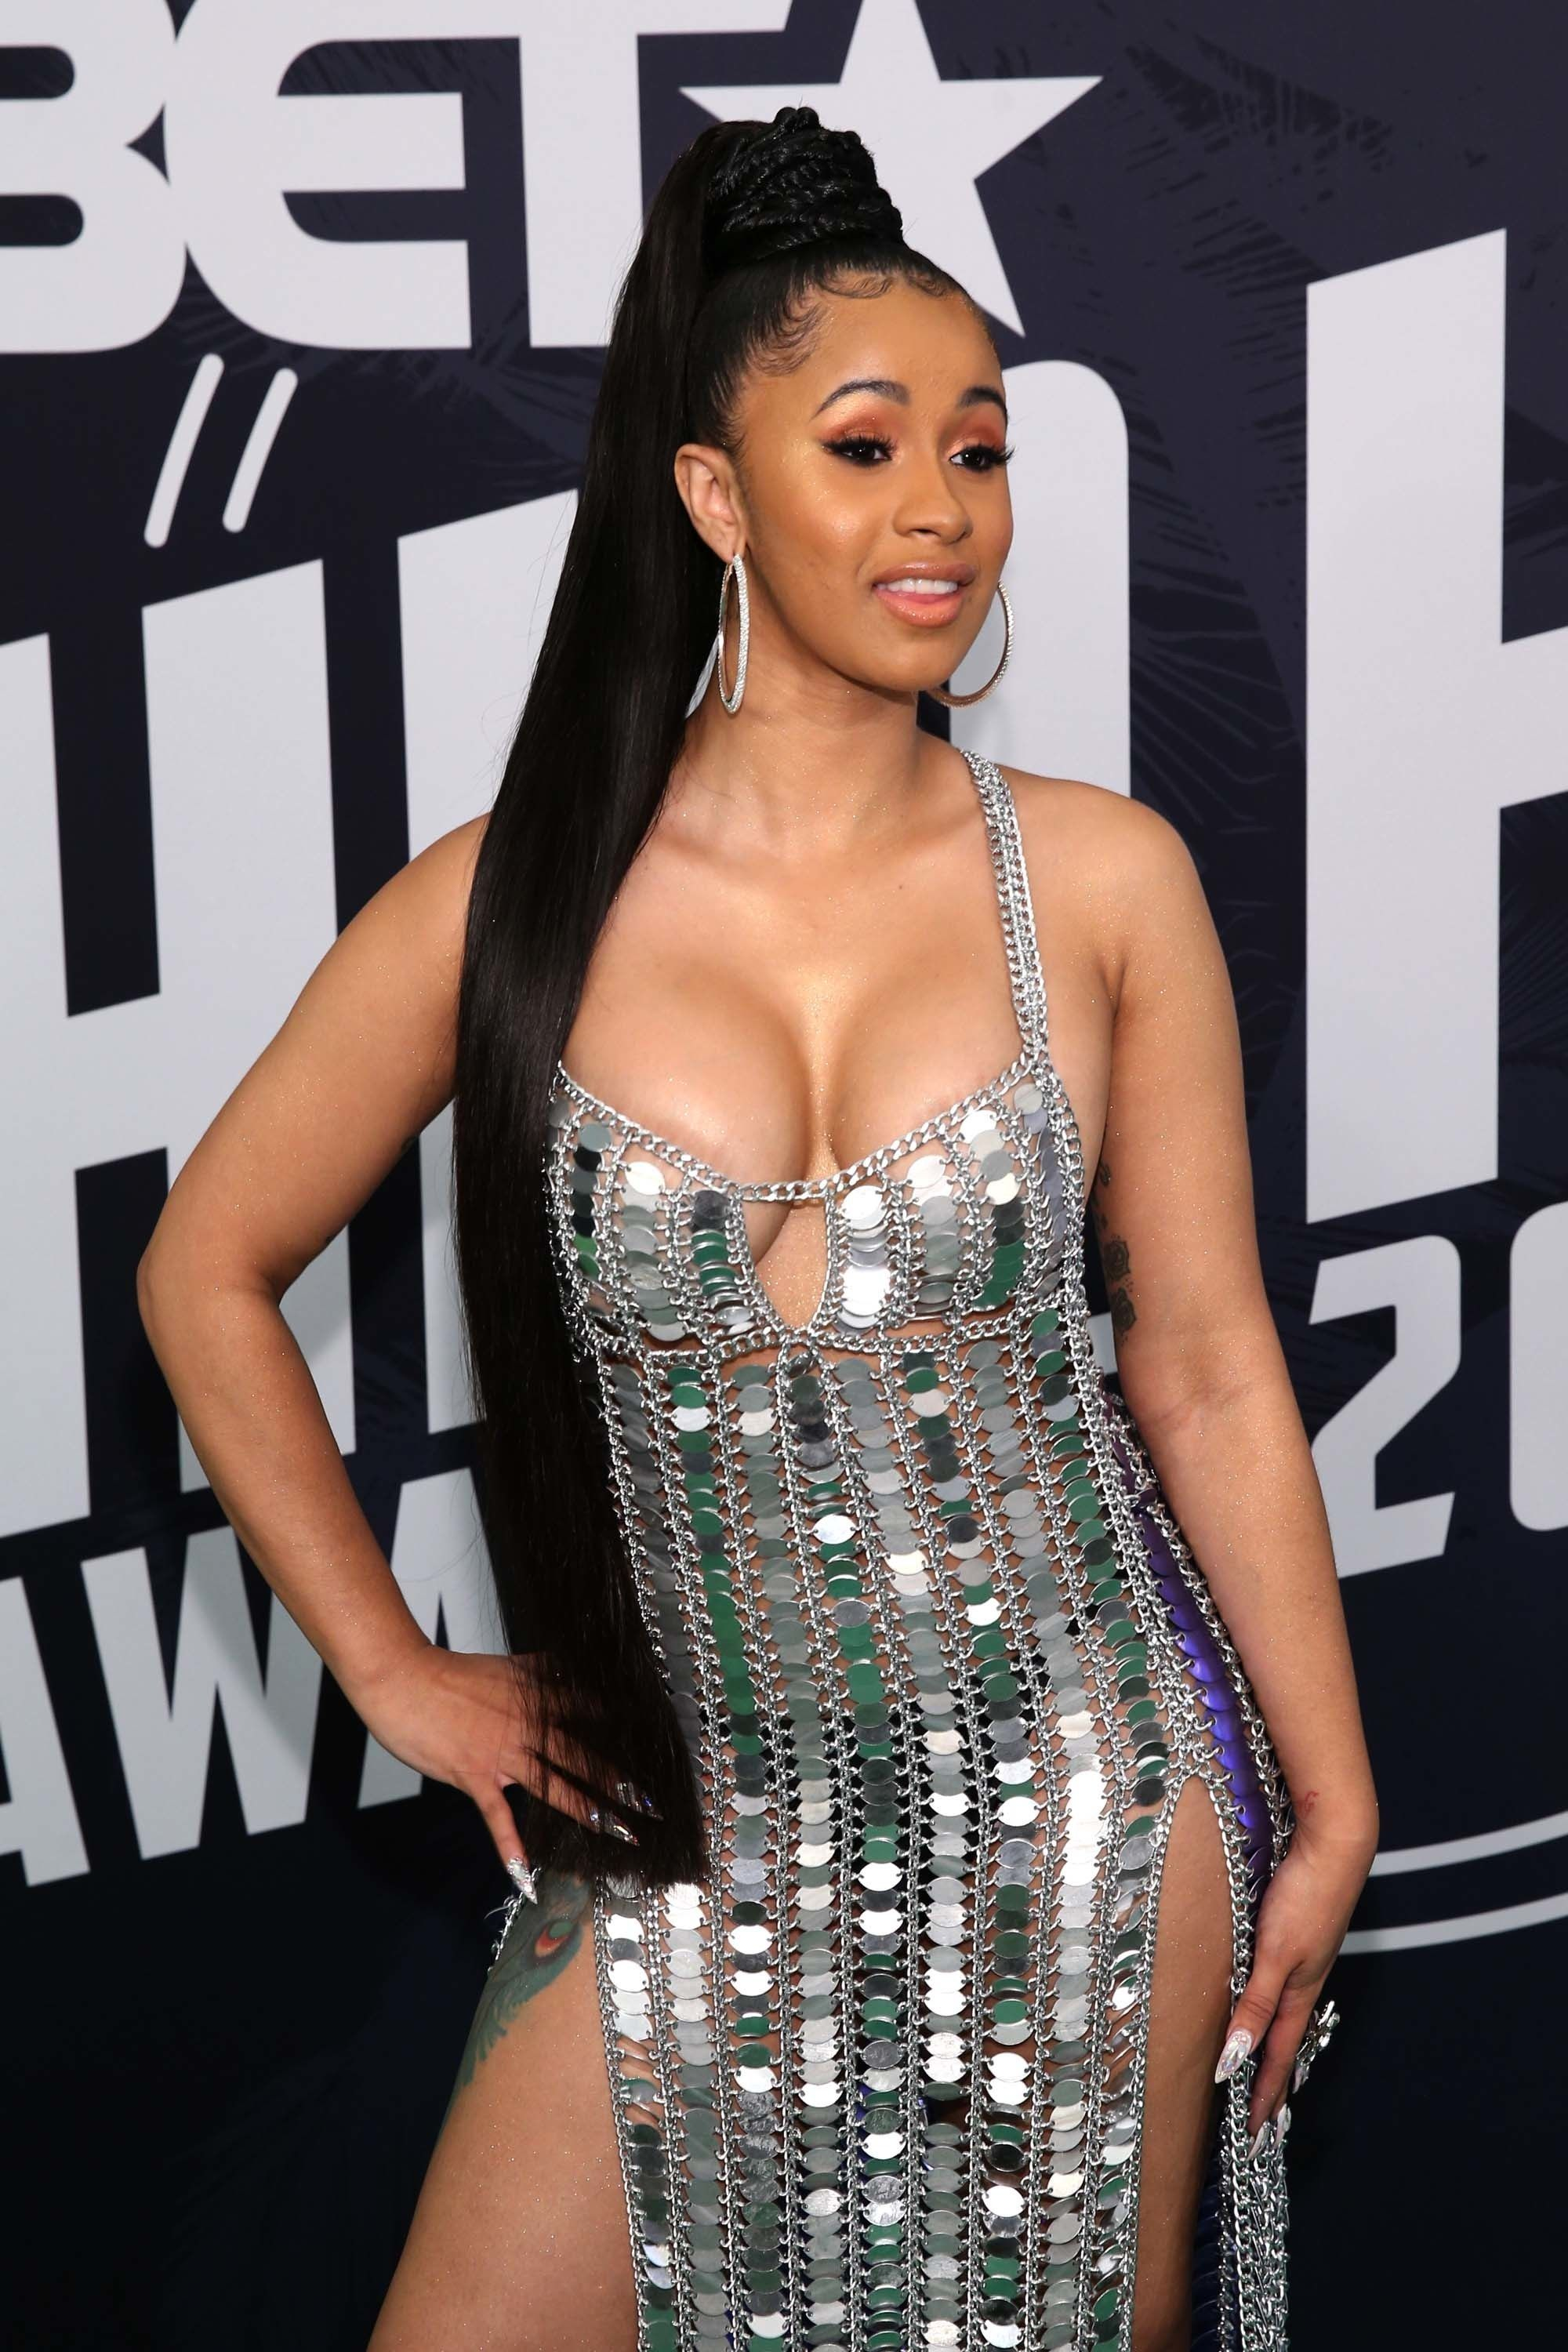 Sexy Cardi B nudes (25 photo), Sexy, Fappening, Feet, panties 2019